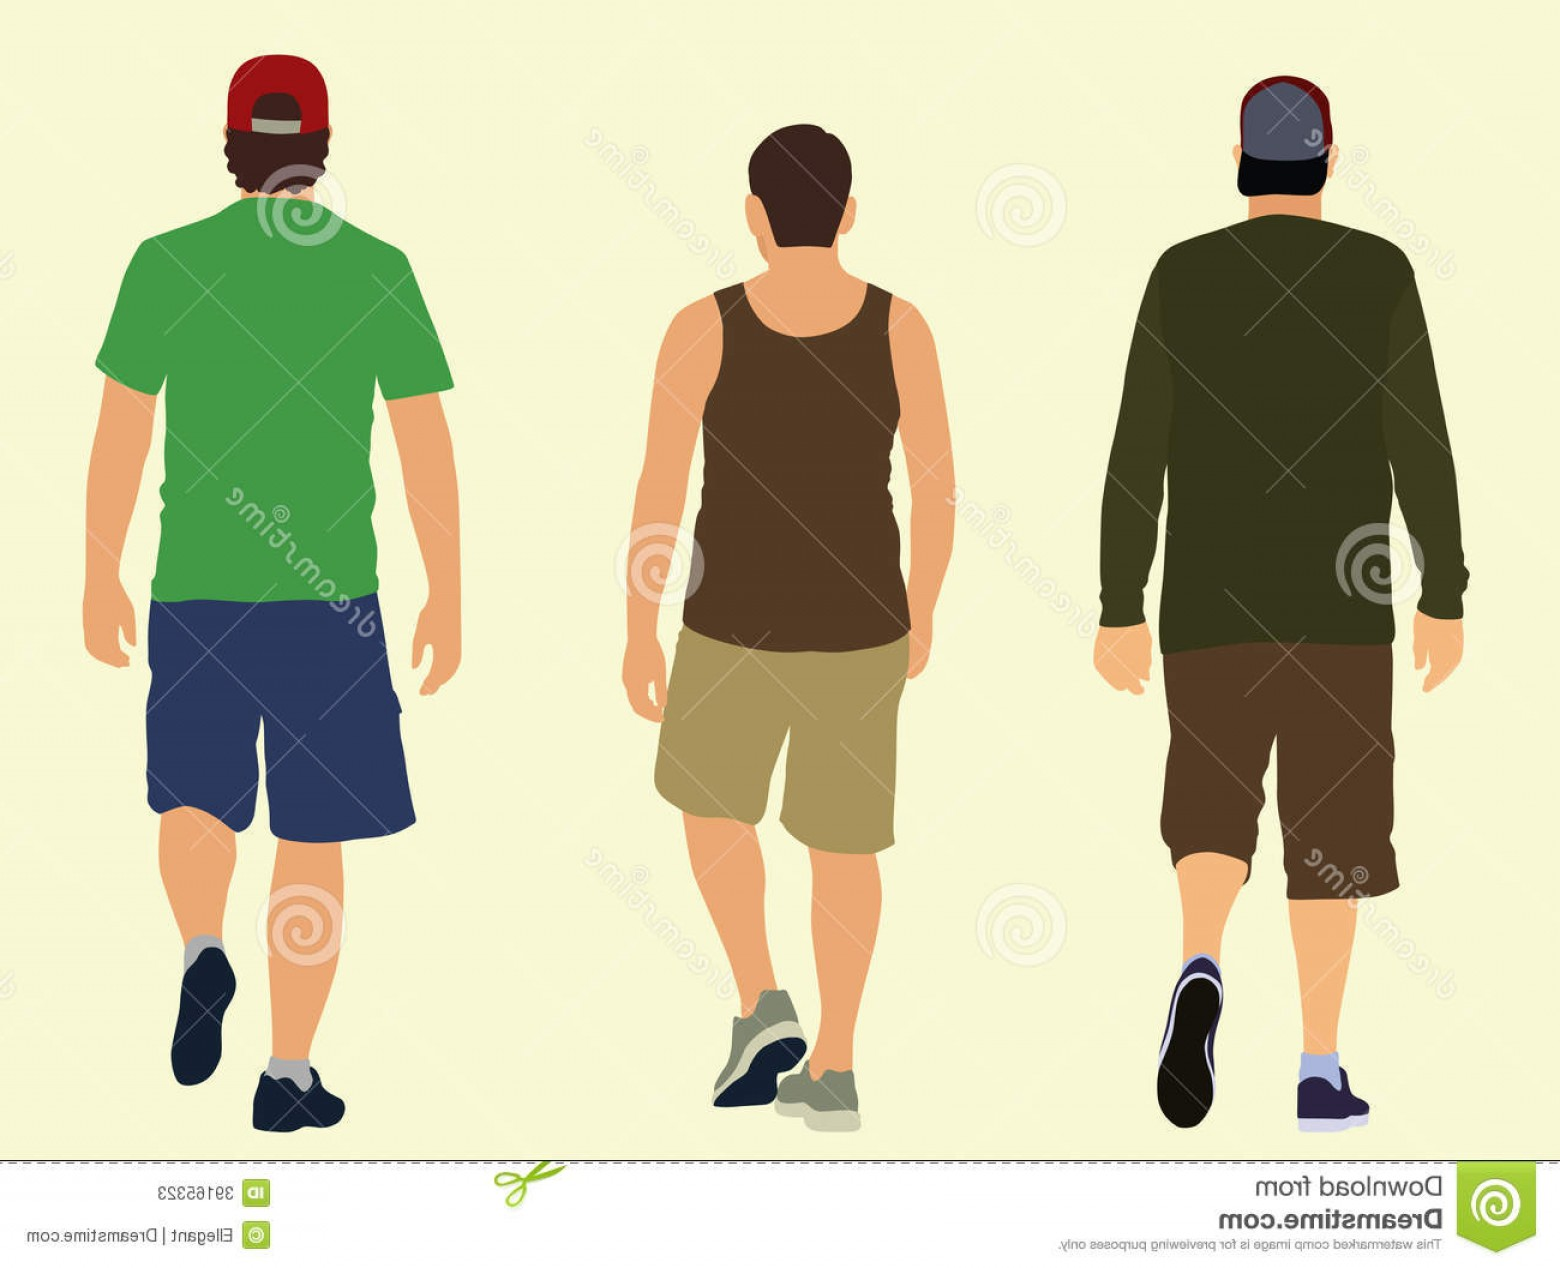 Walking Away Vector: Stock Photos Walking Away Three Young Men Wearing Shorts Image